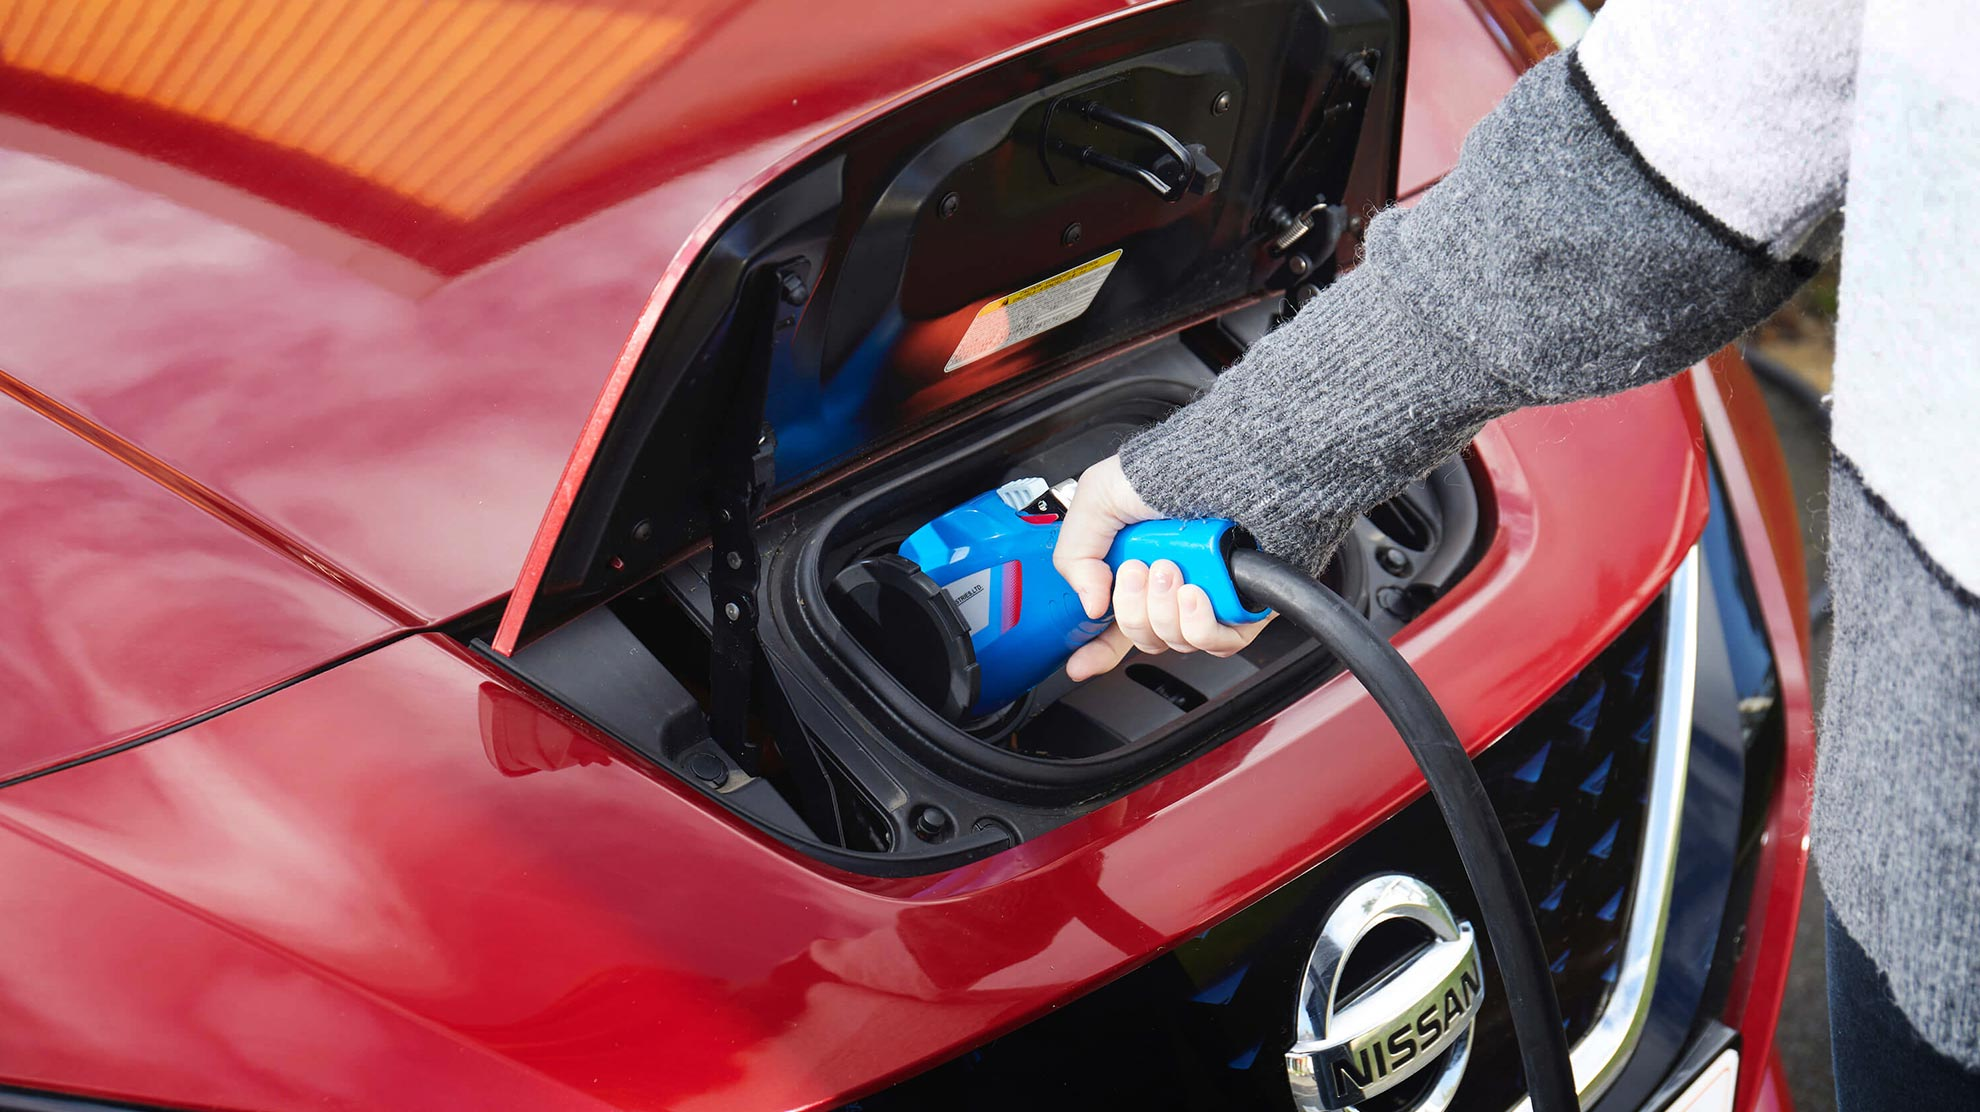 Excess EV energy could recharge grid